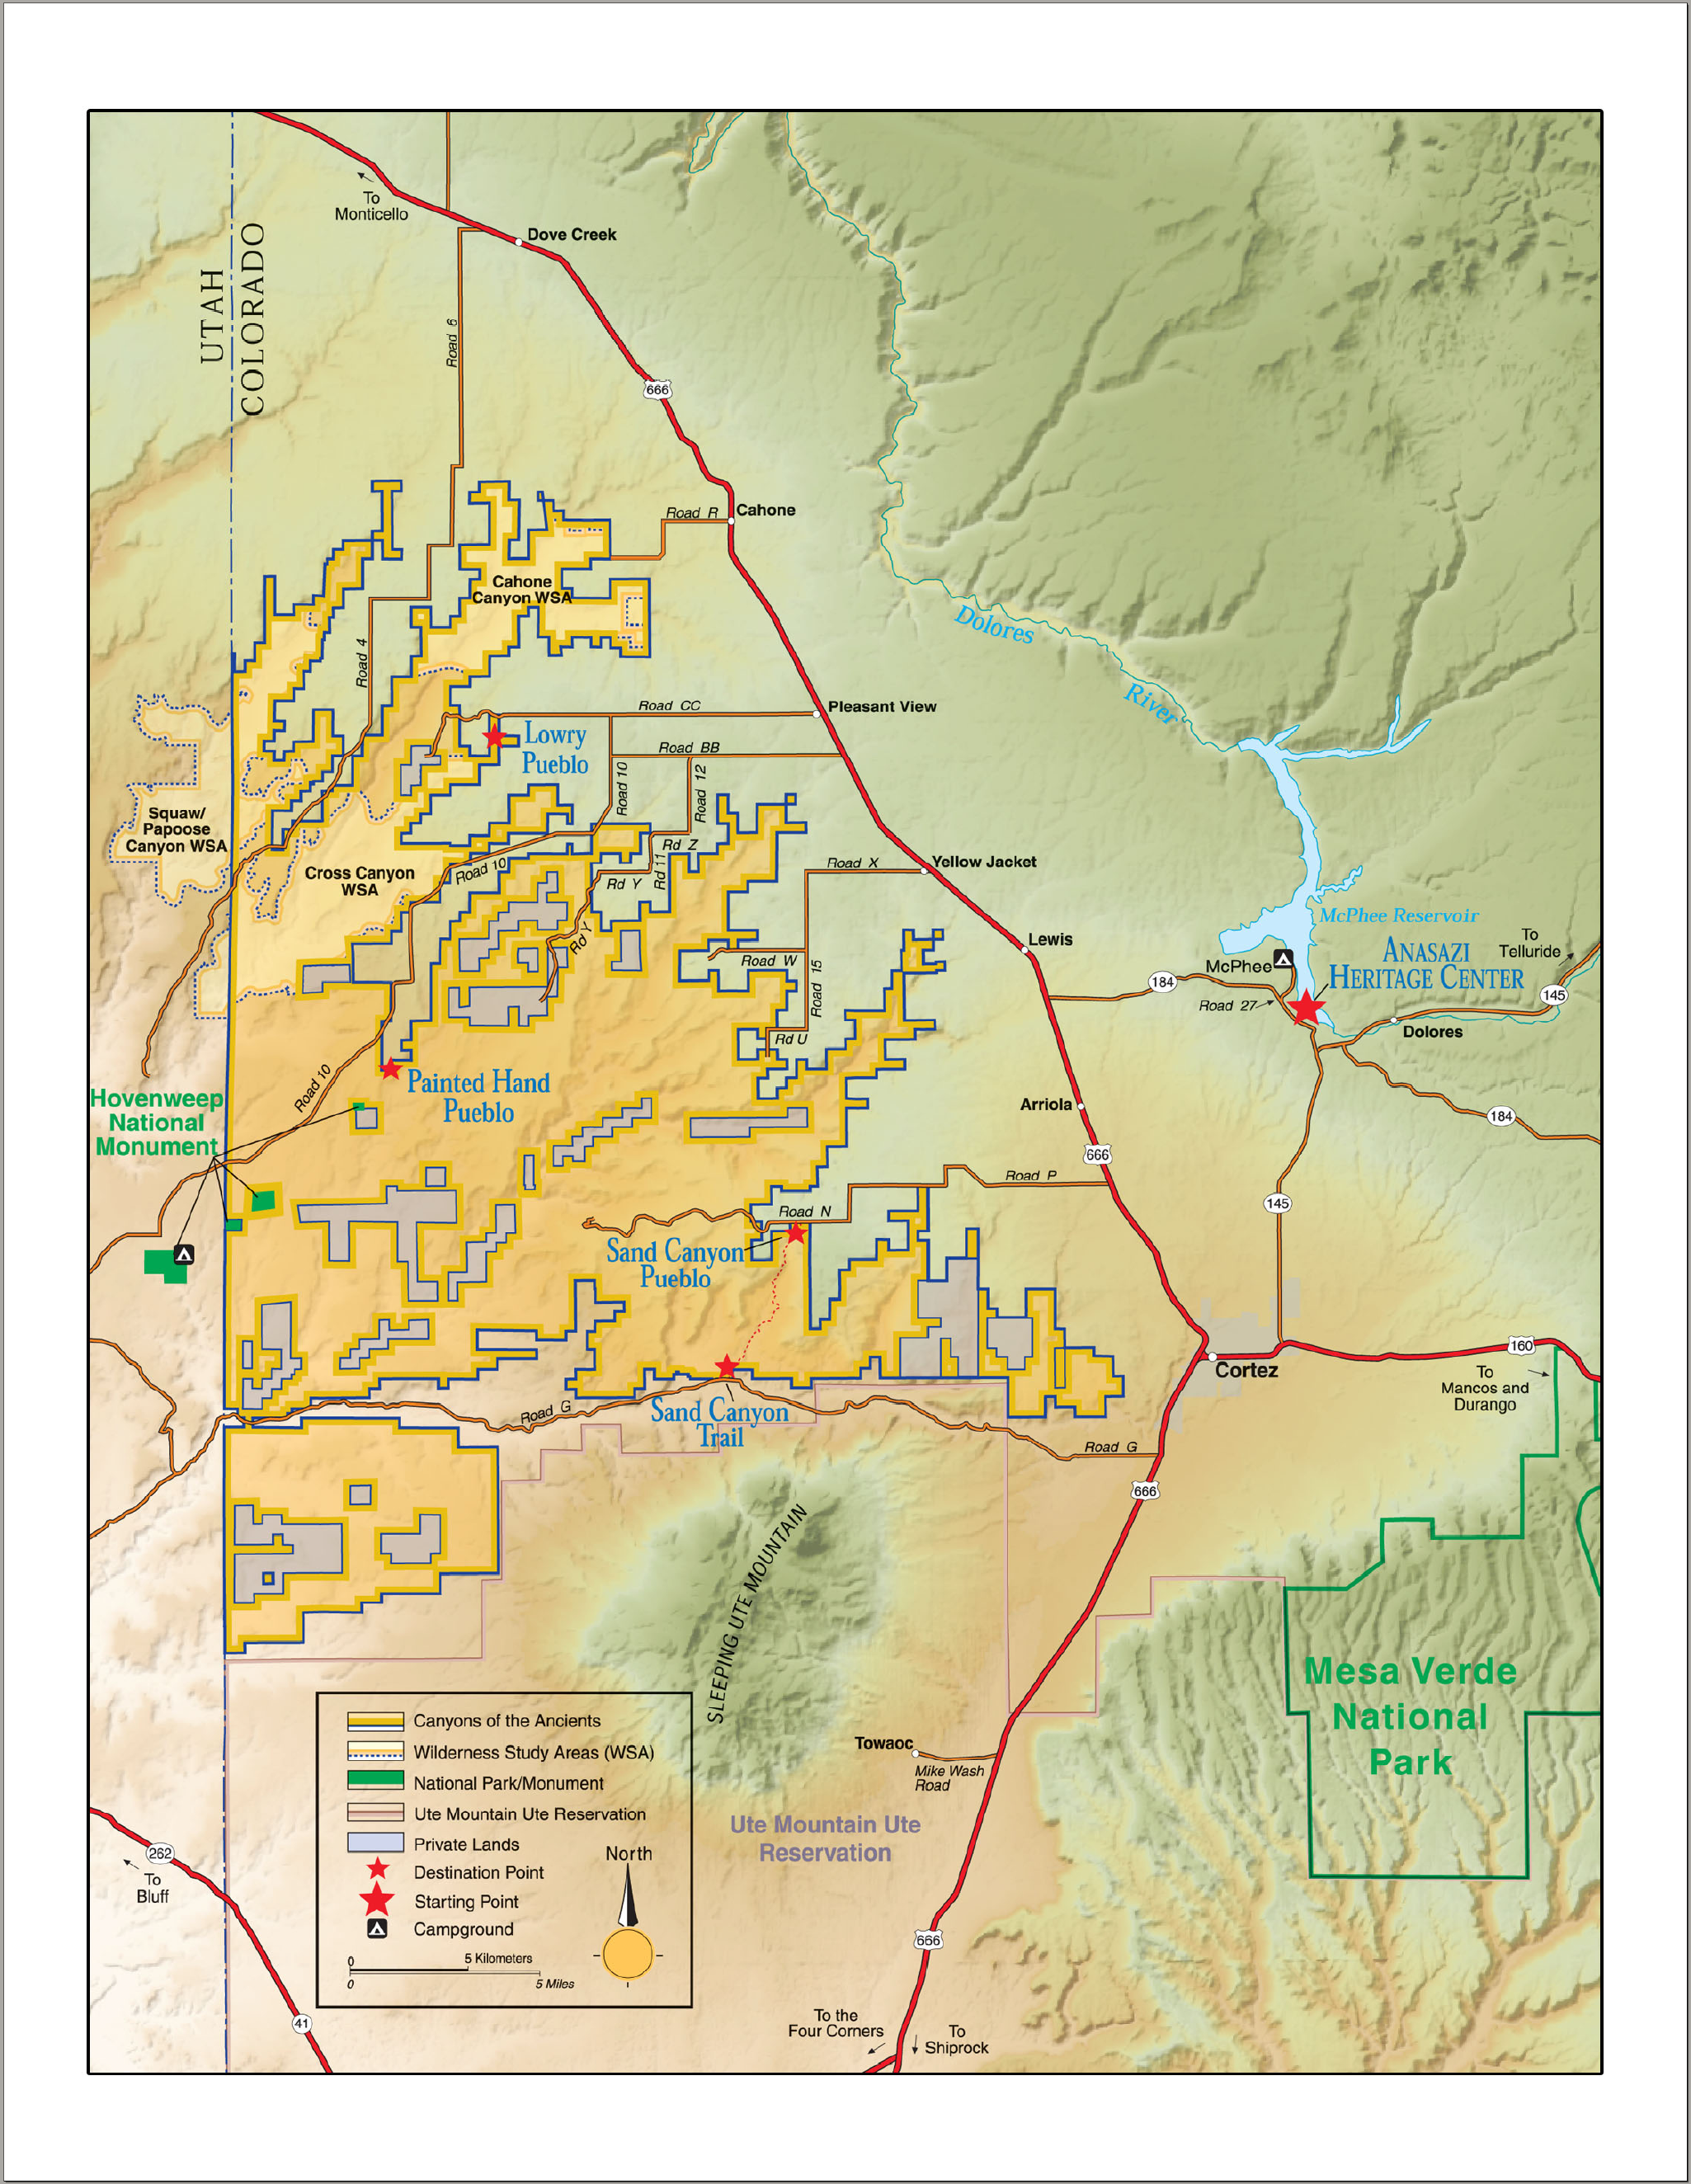 Canyon Of The Ancients Map File:Map of Canyon of the Ancients National Monument.png